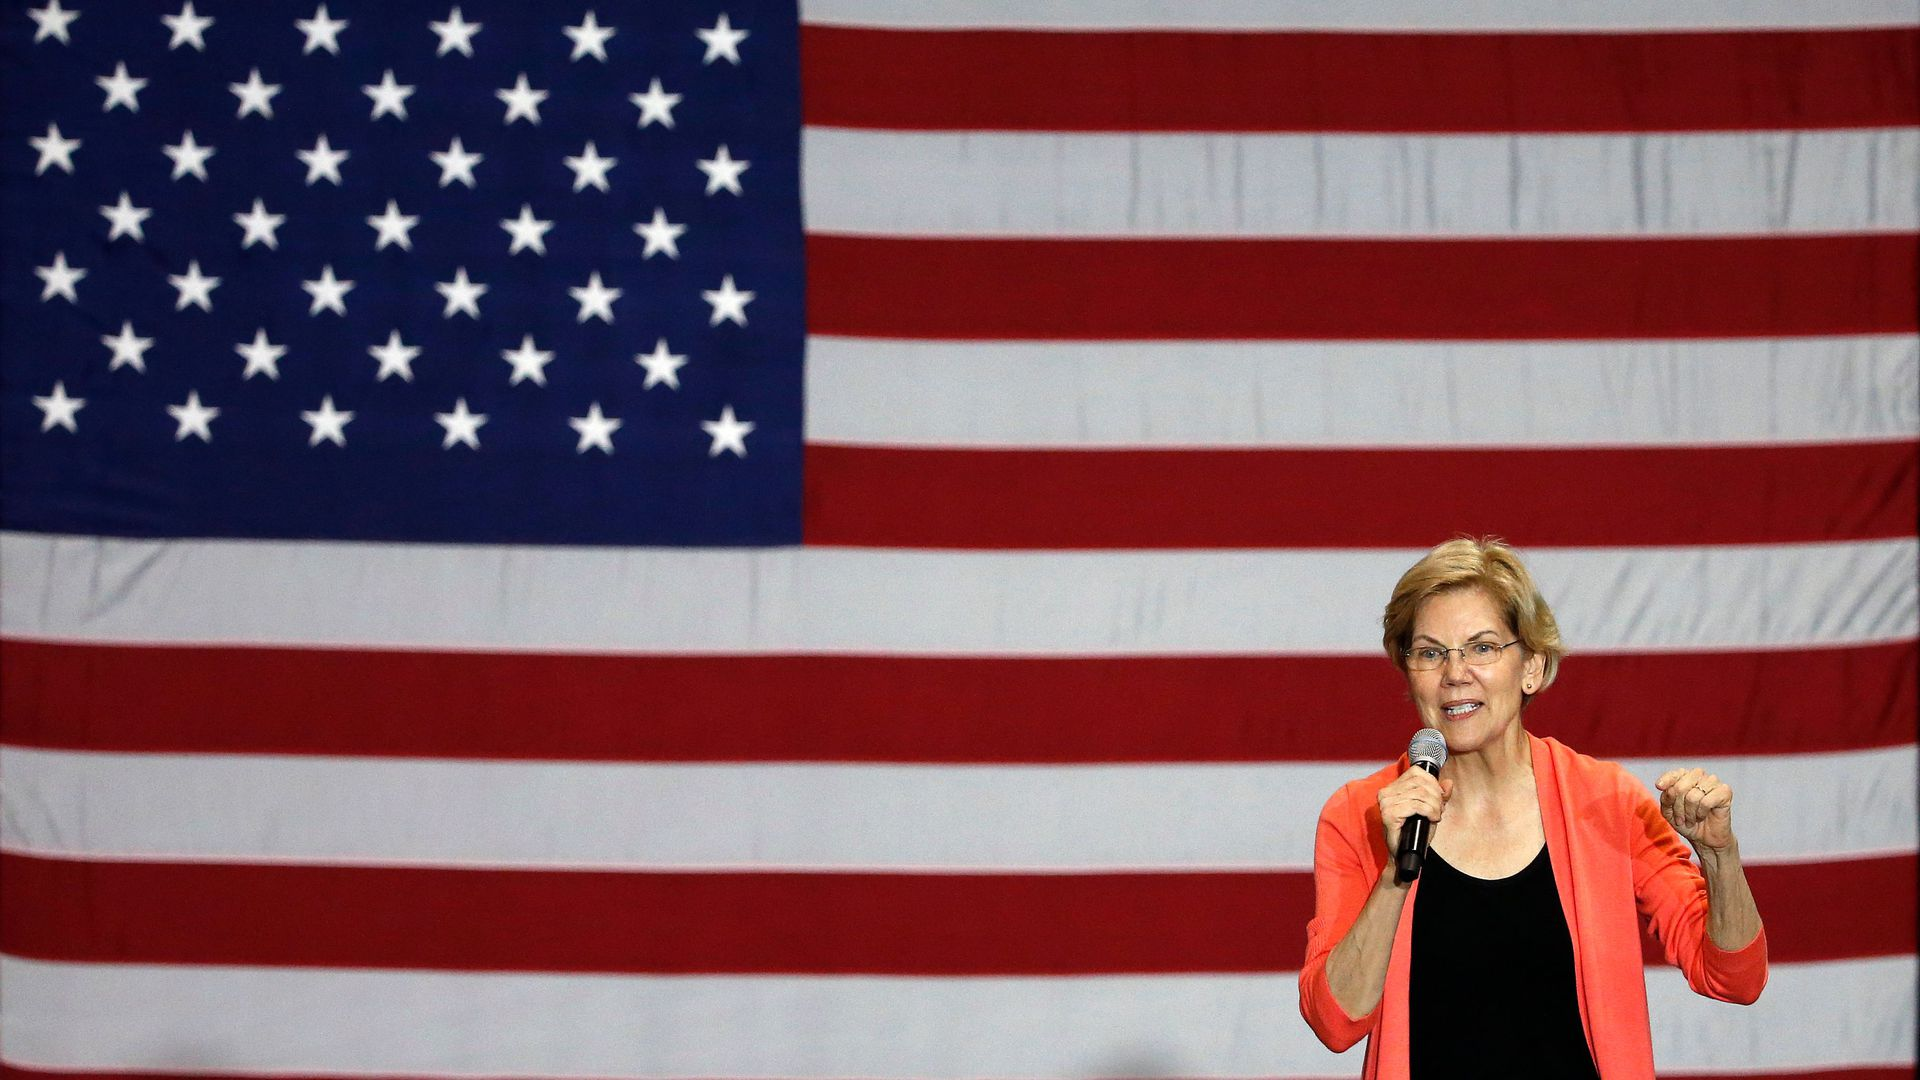 Senator of Massachusetts (D) and Democratic Presidential hopeful Elizabeth Warren gestures as she speaks during a town hall meeting at Florida International University in Miami, Florida on June 25.